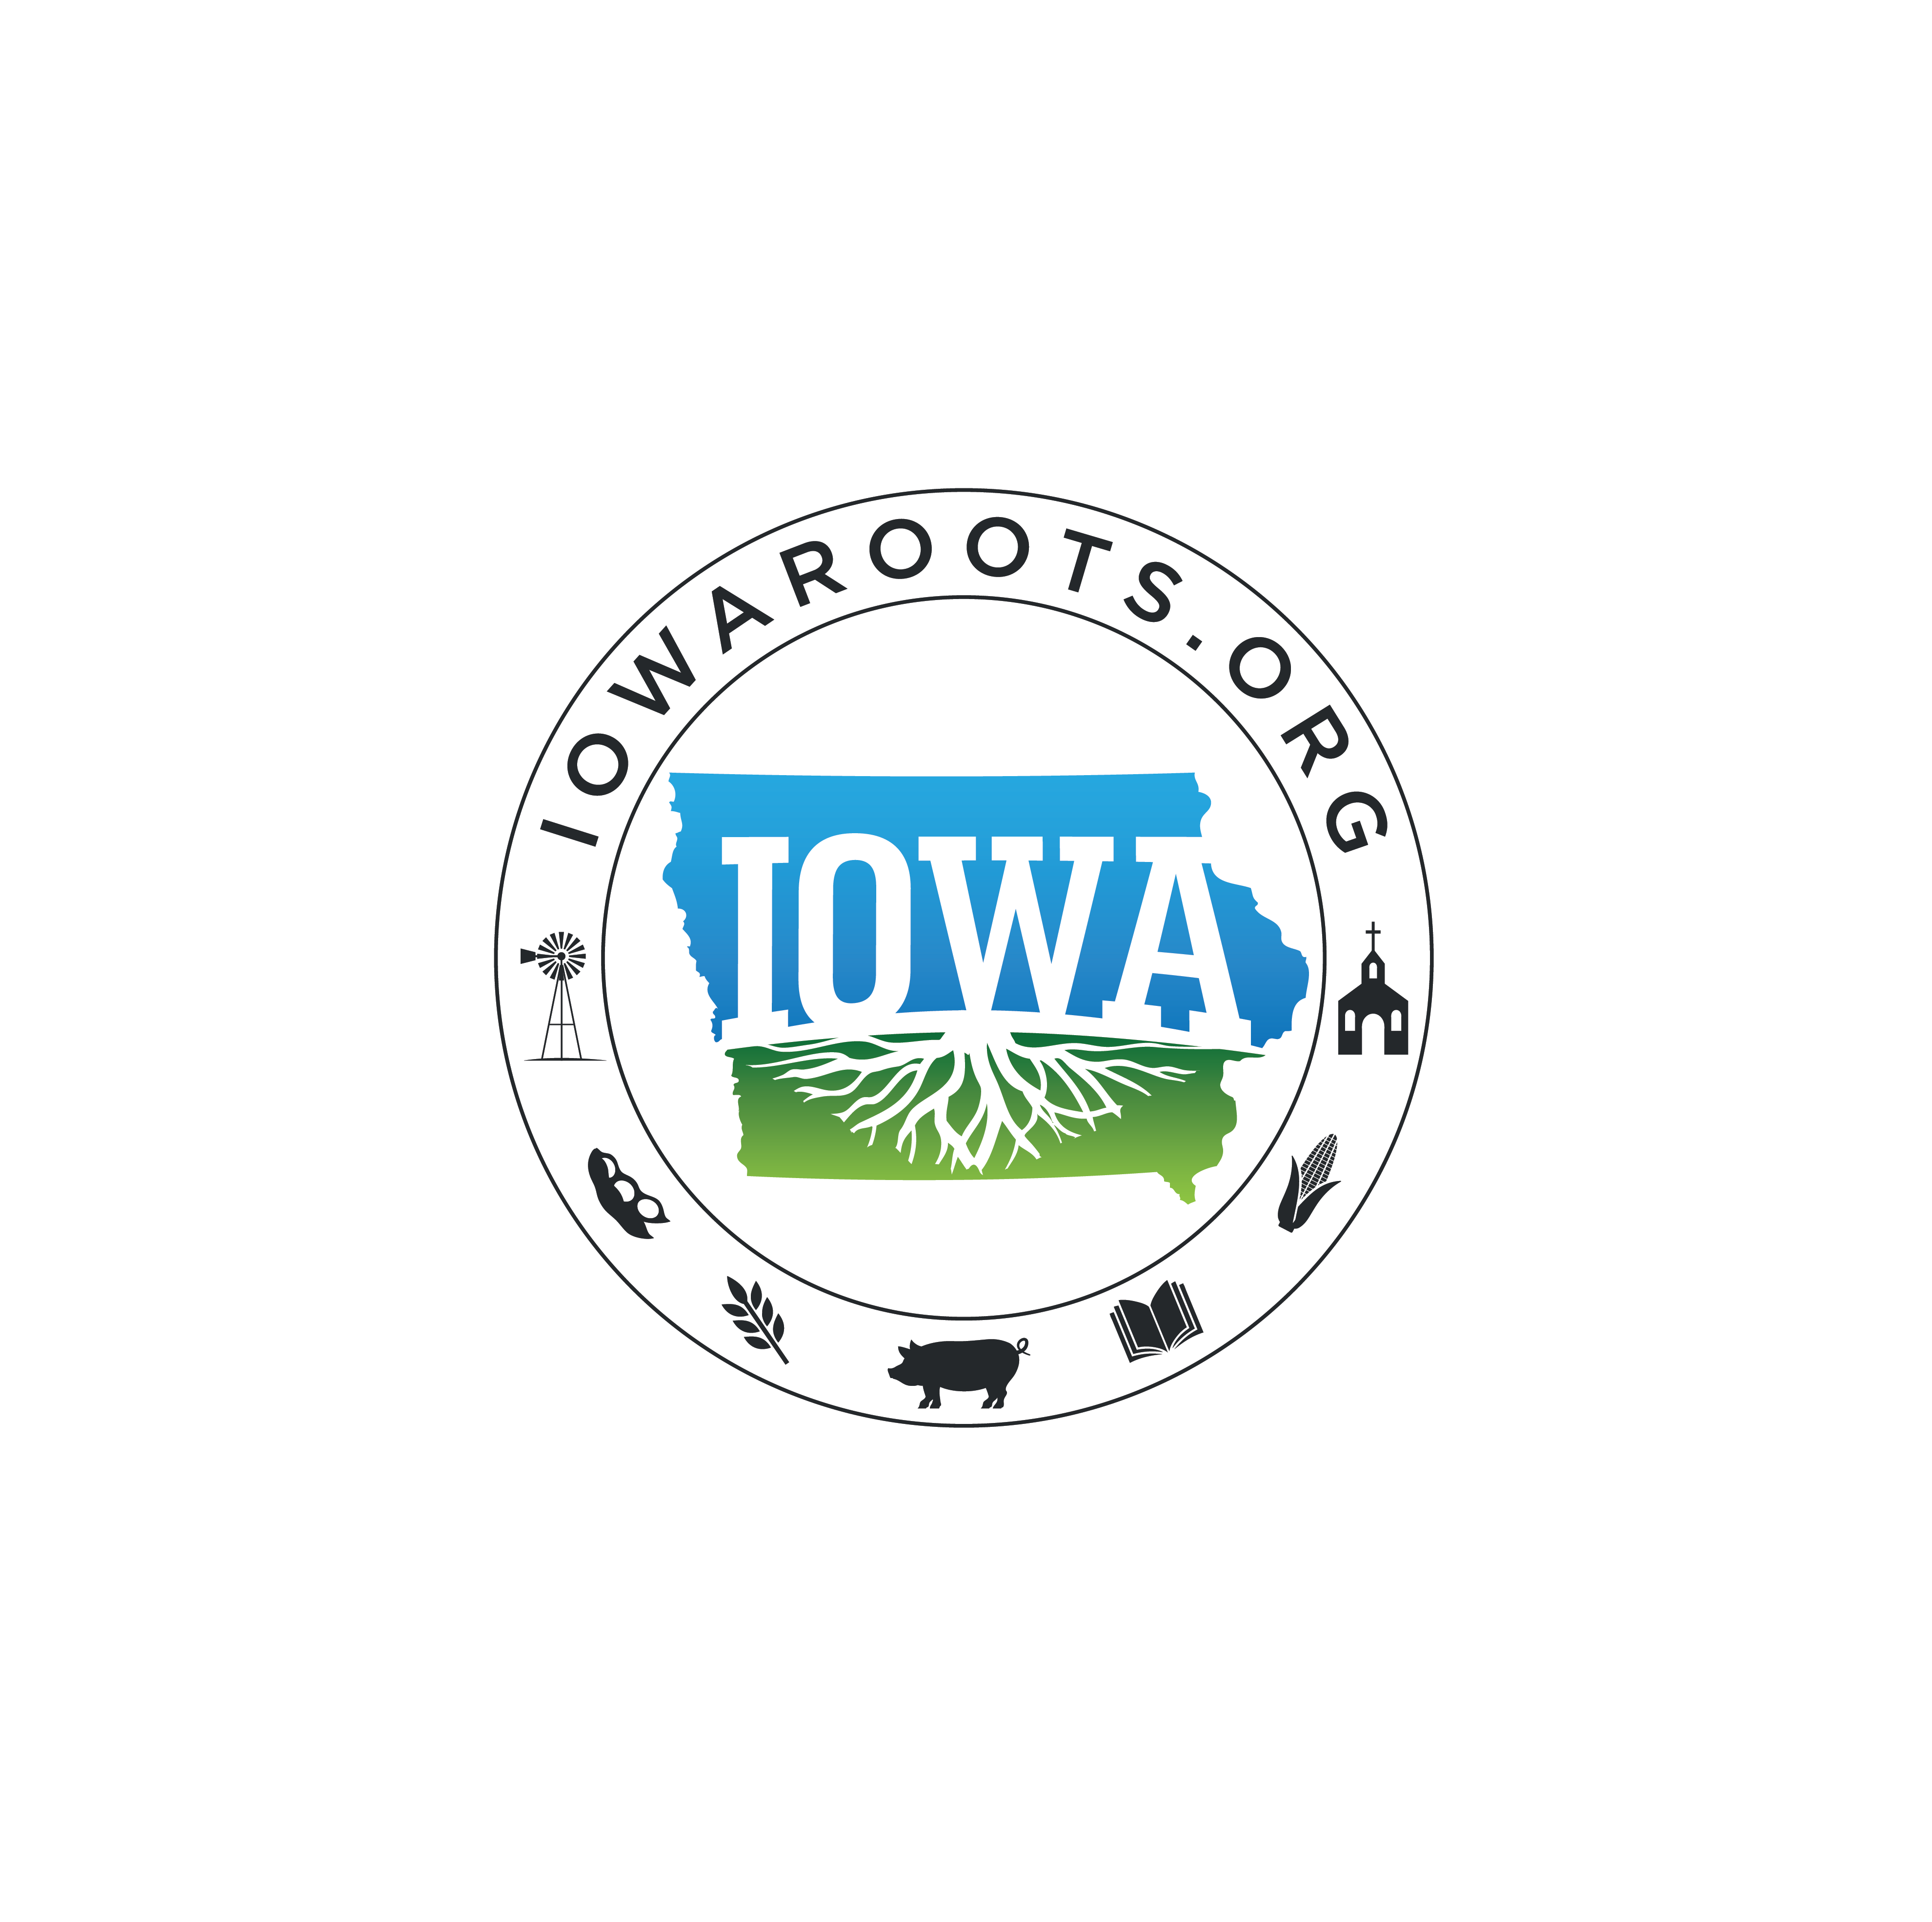 Making Rural America Great Again, Design a logo for Iowa Roots